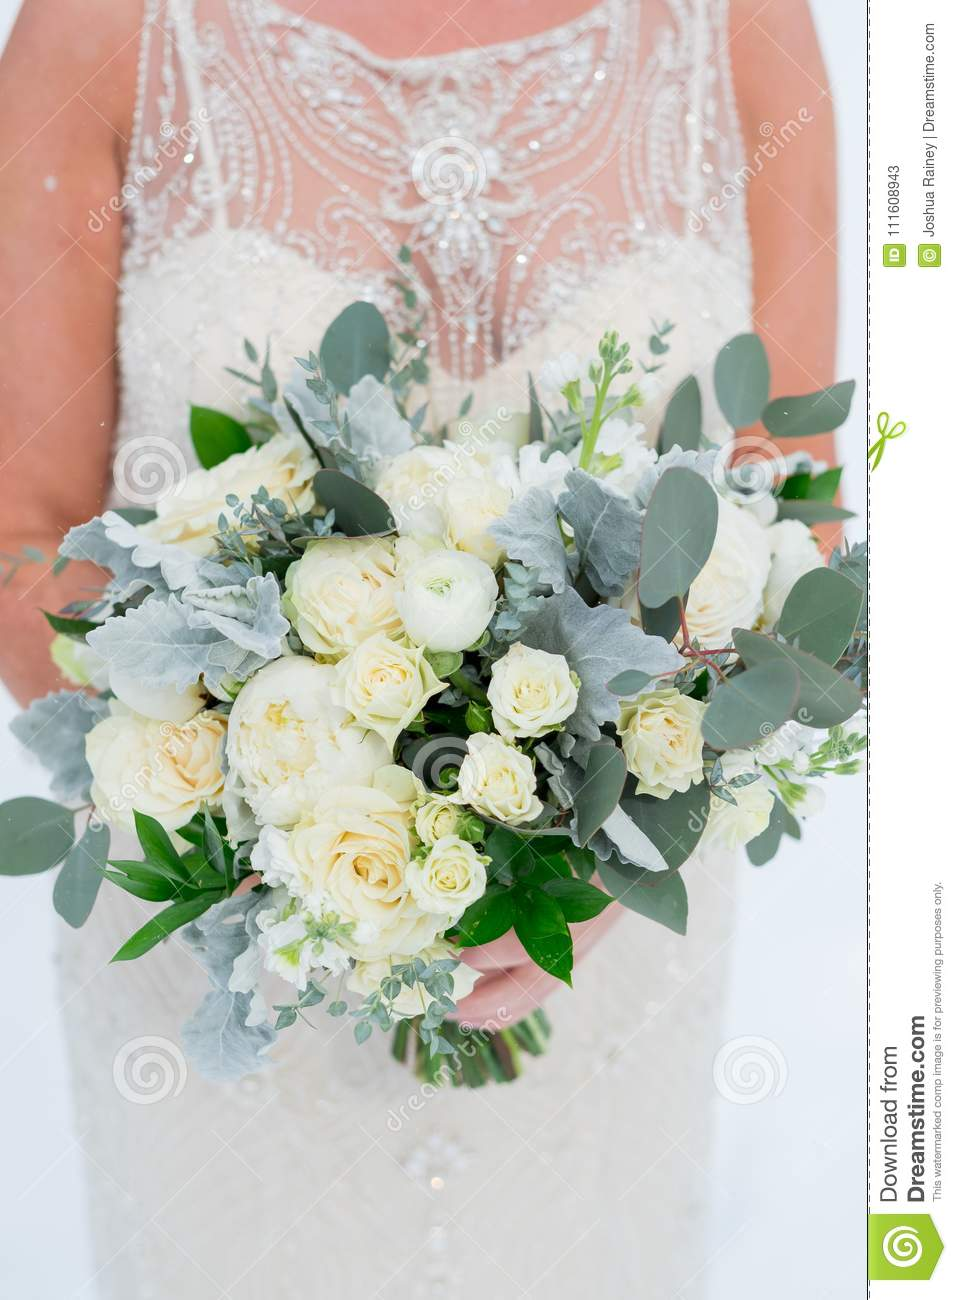 Bridal bouquet of white and green flowers stock image image of download bridal bouquet of white and green flowers stock image image of bridal event izmirmasajfo